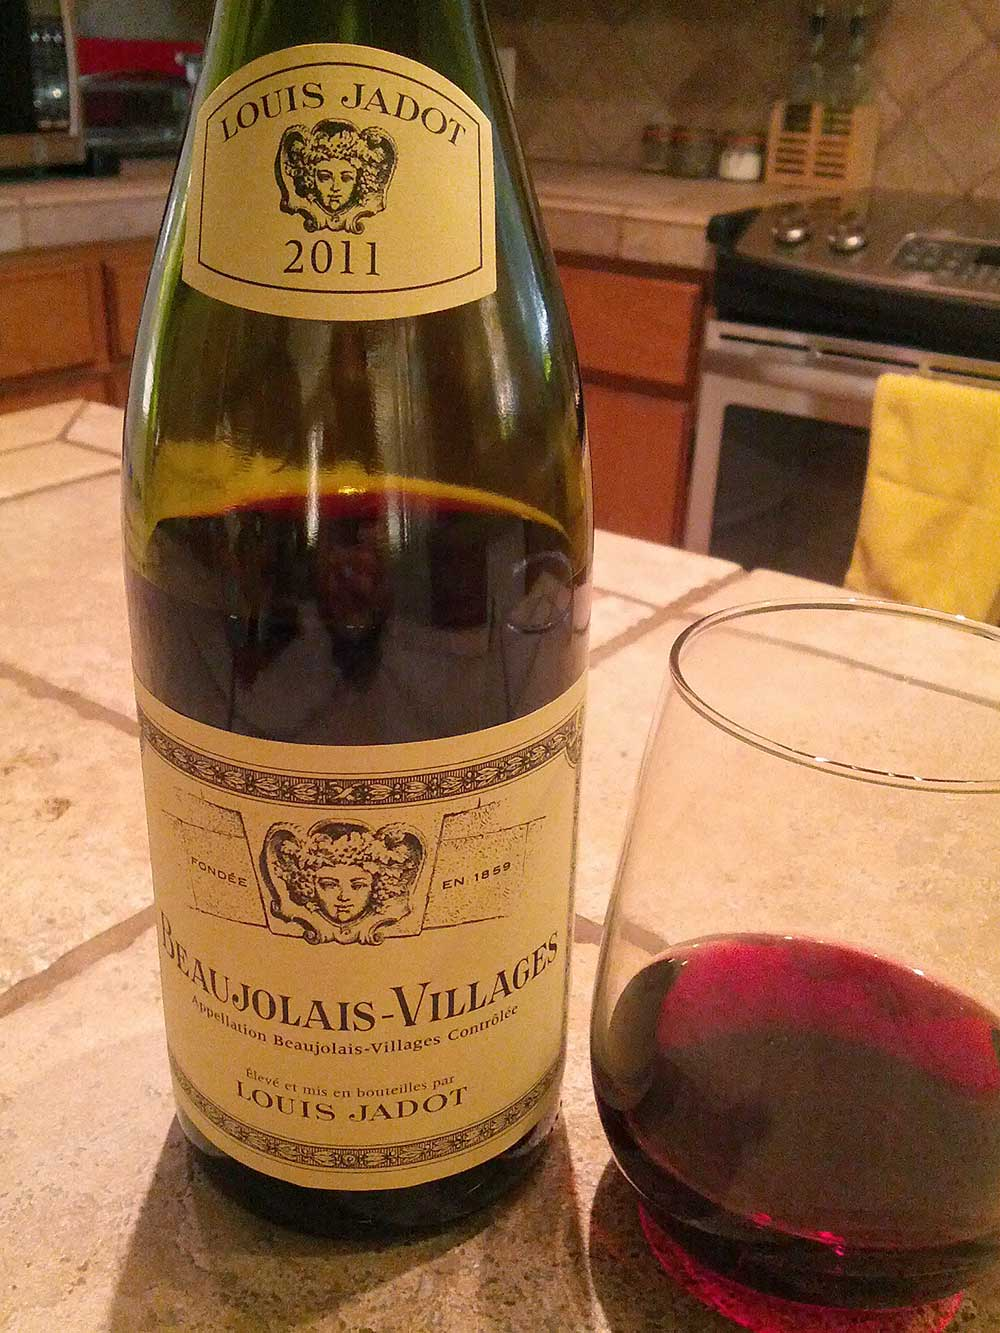 Louis Jadot Beaujolais-Villages 2011 - sowiwi